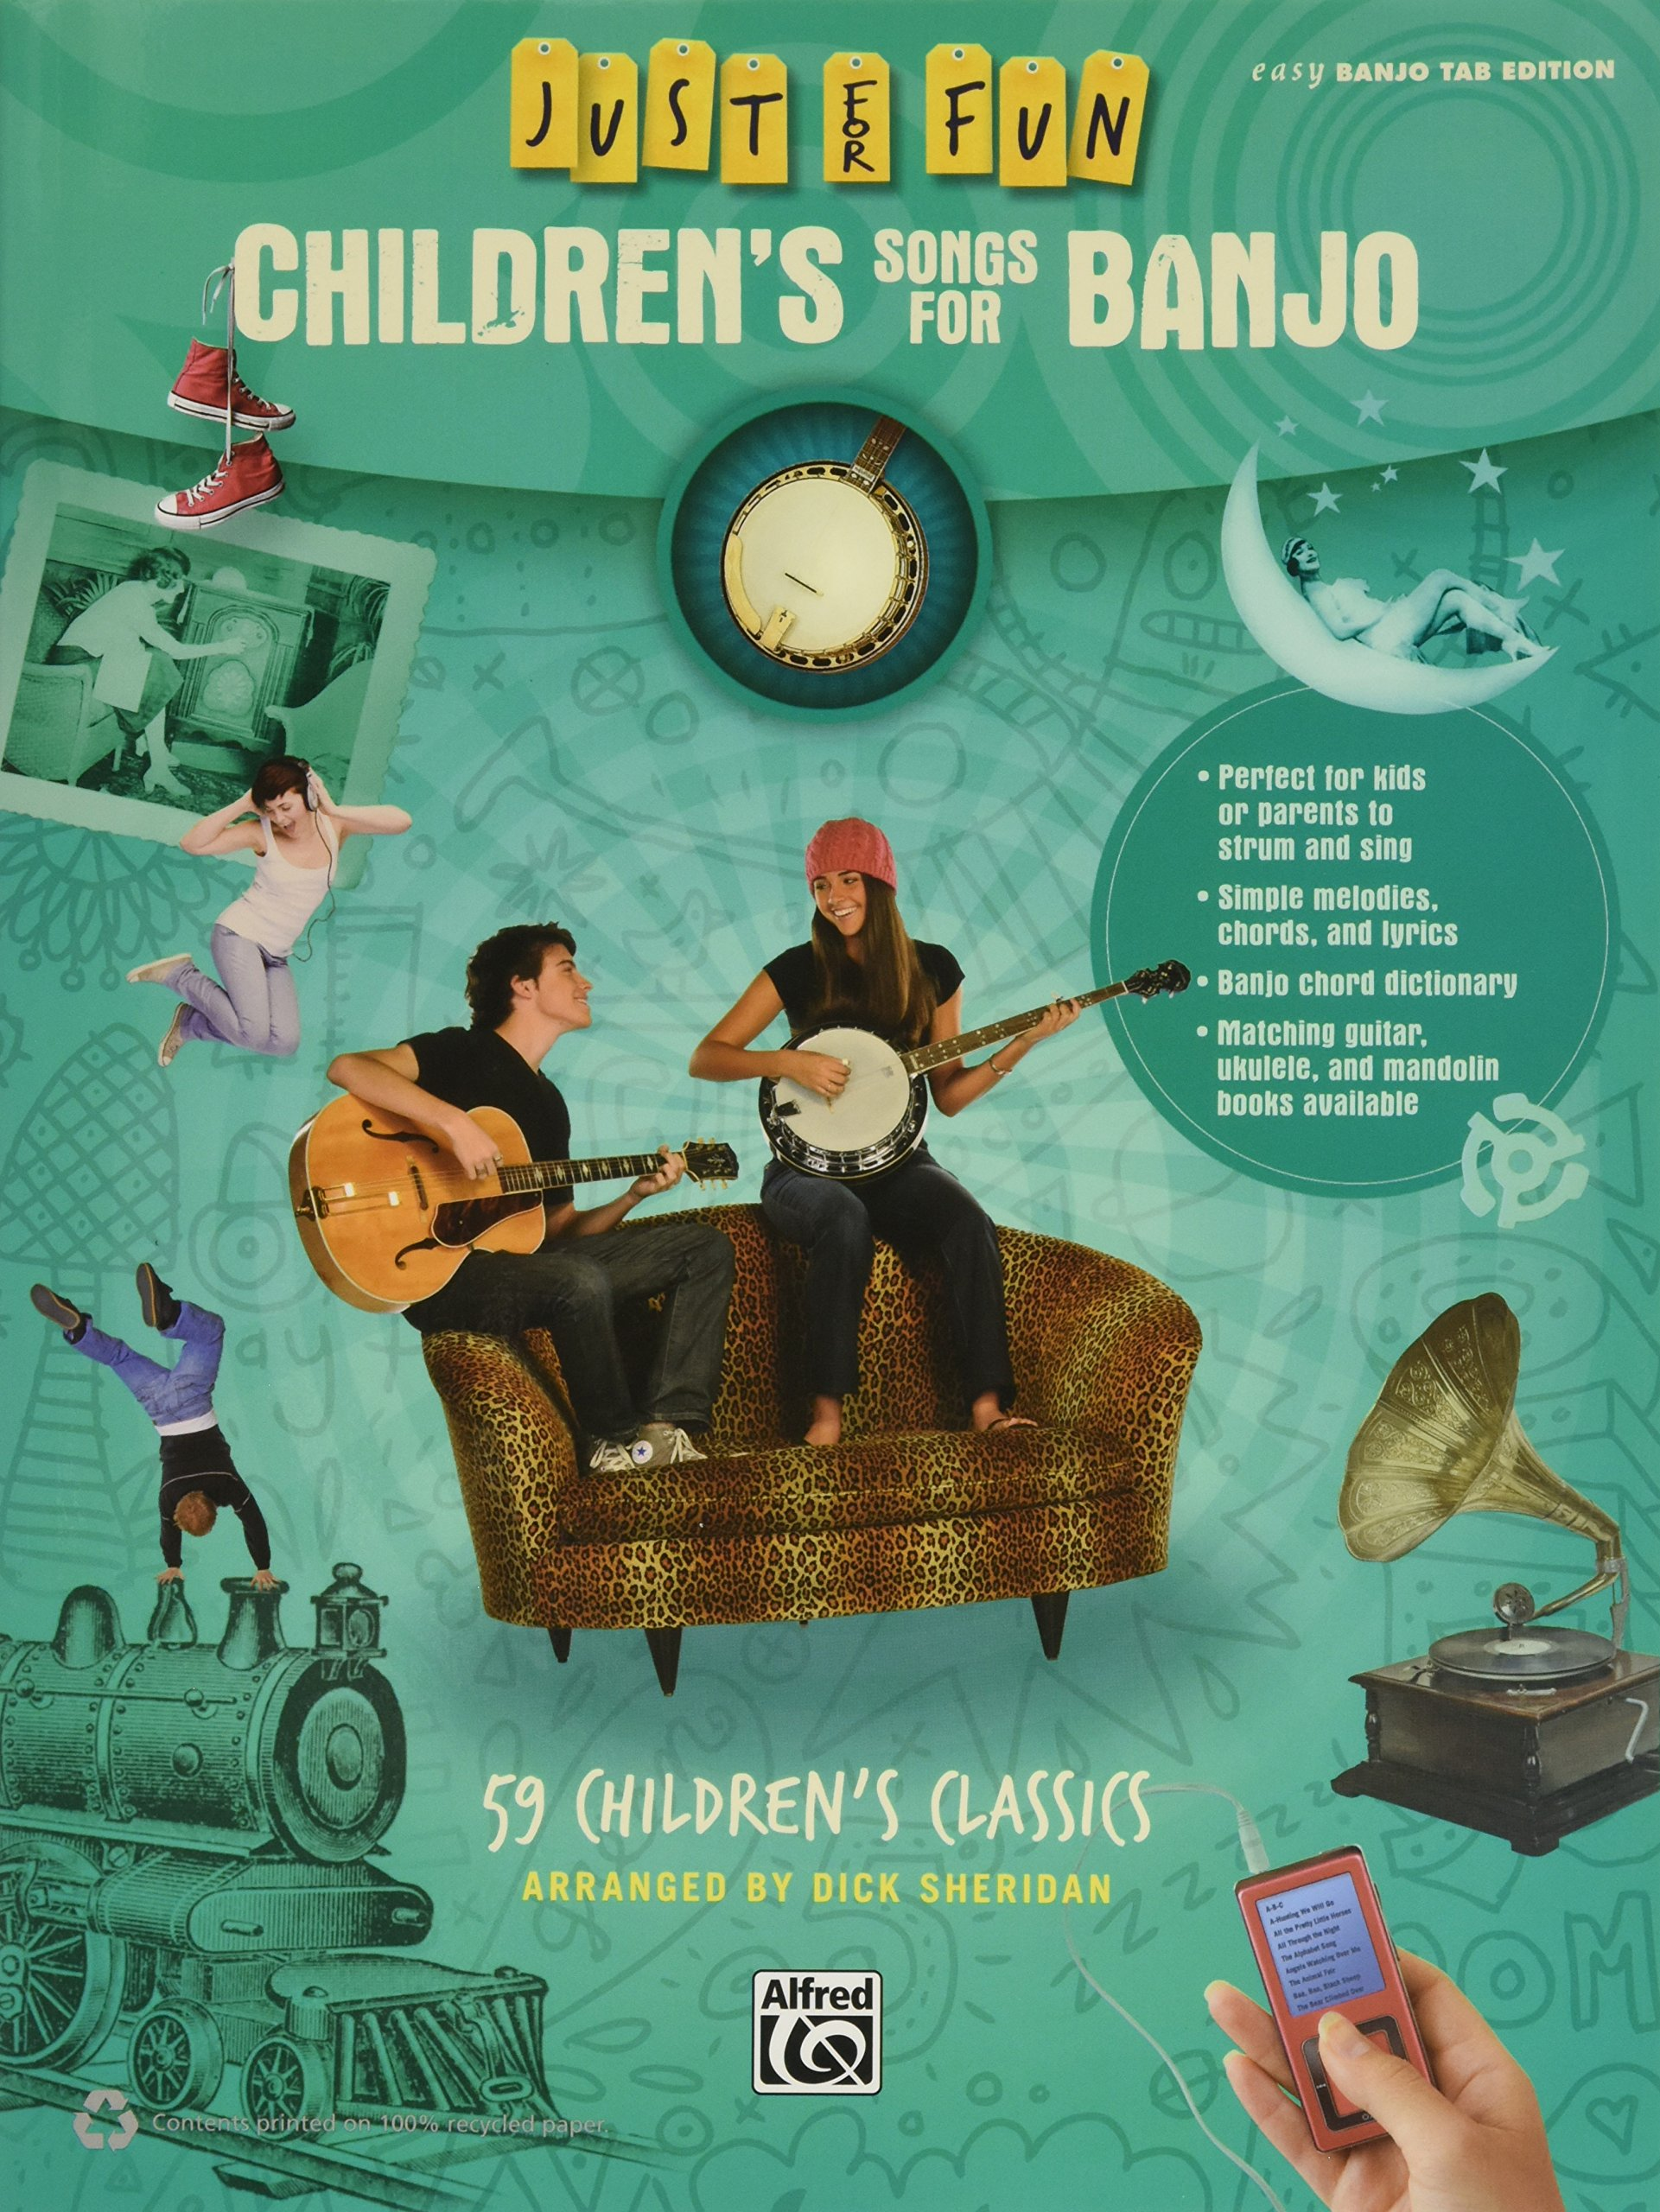 Just for Fun -- Children's Songs for Banjo: 59 Children's Classics